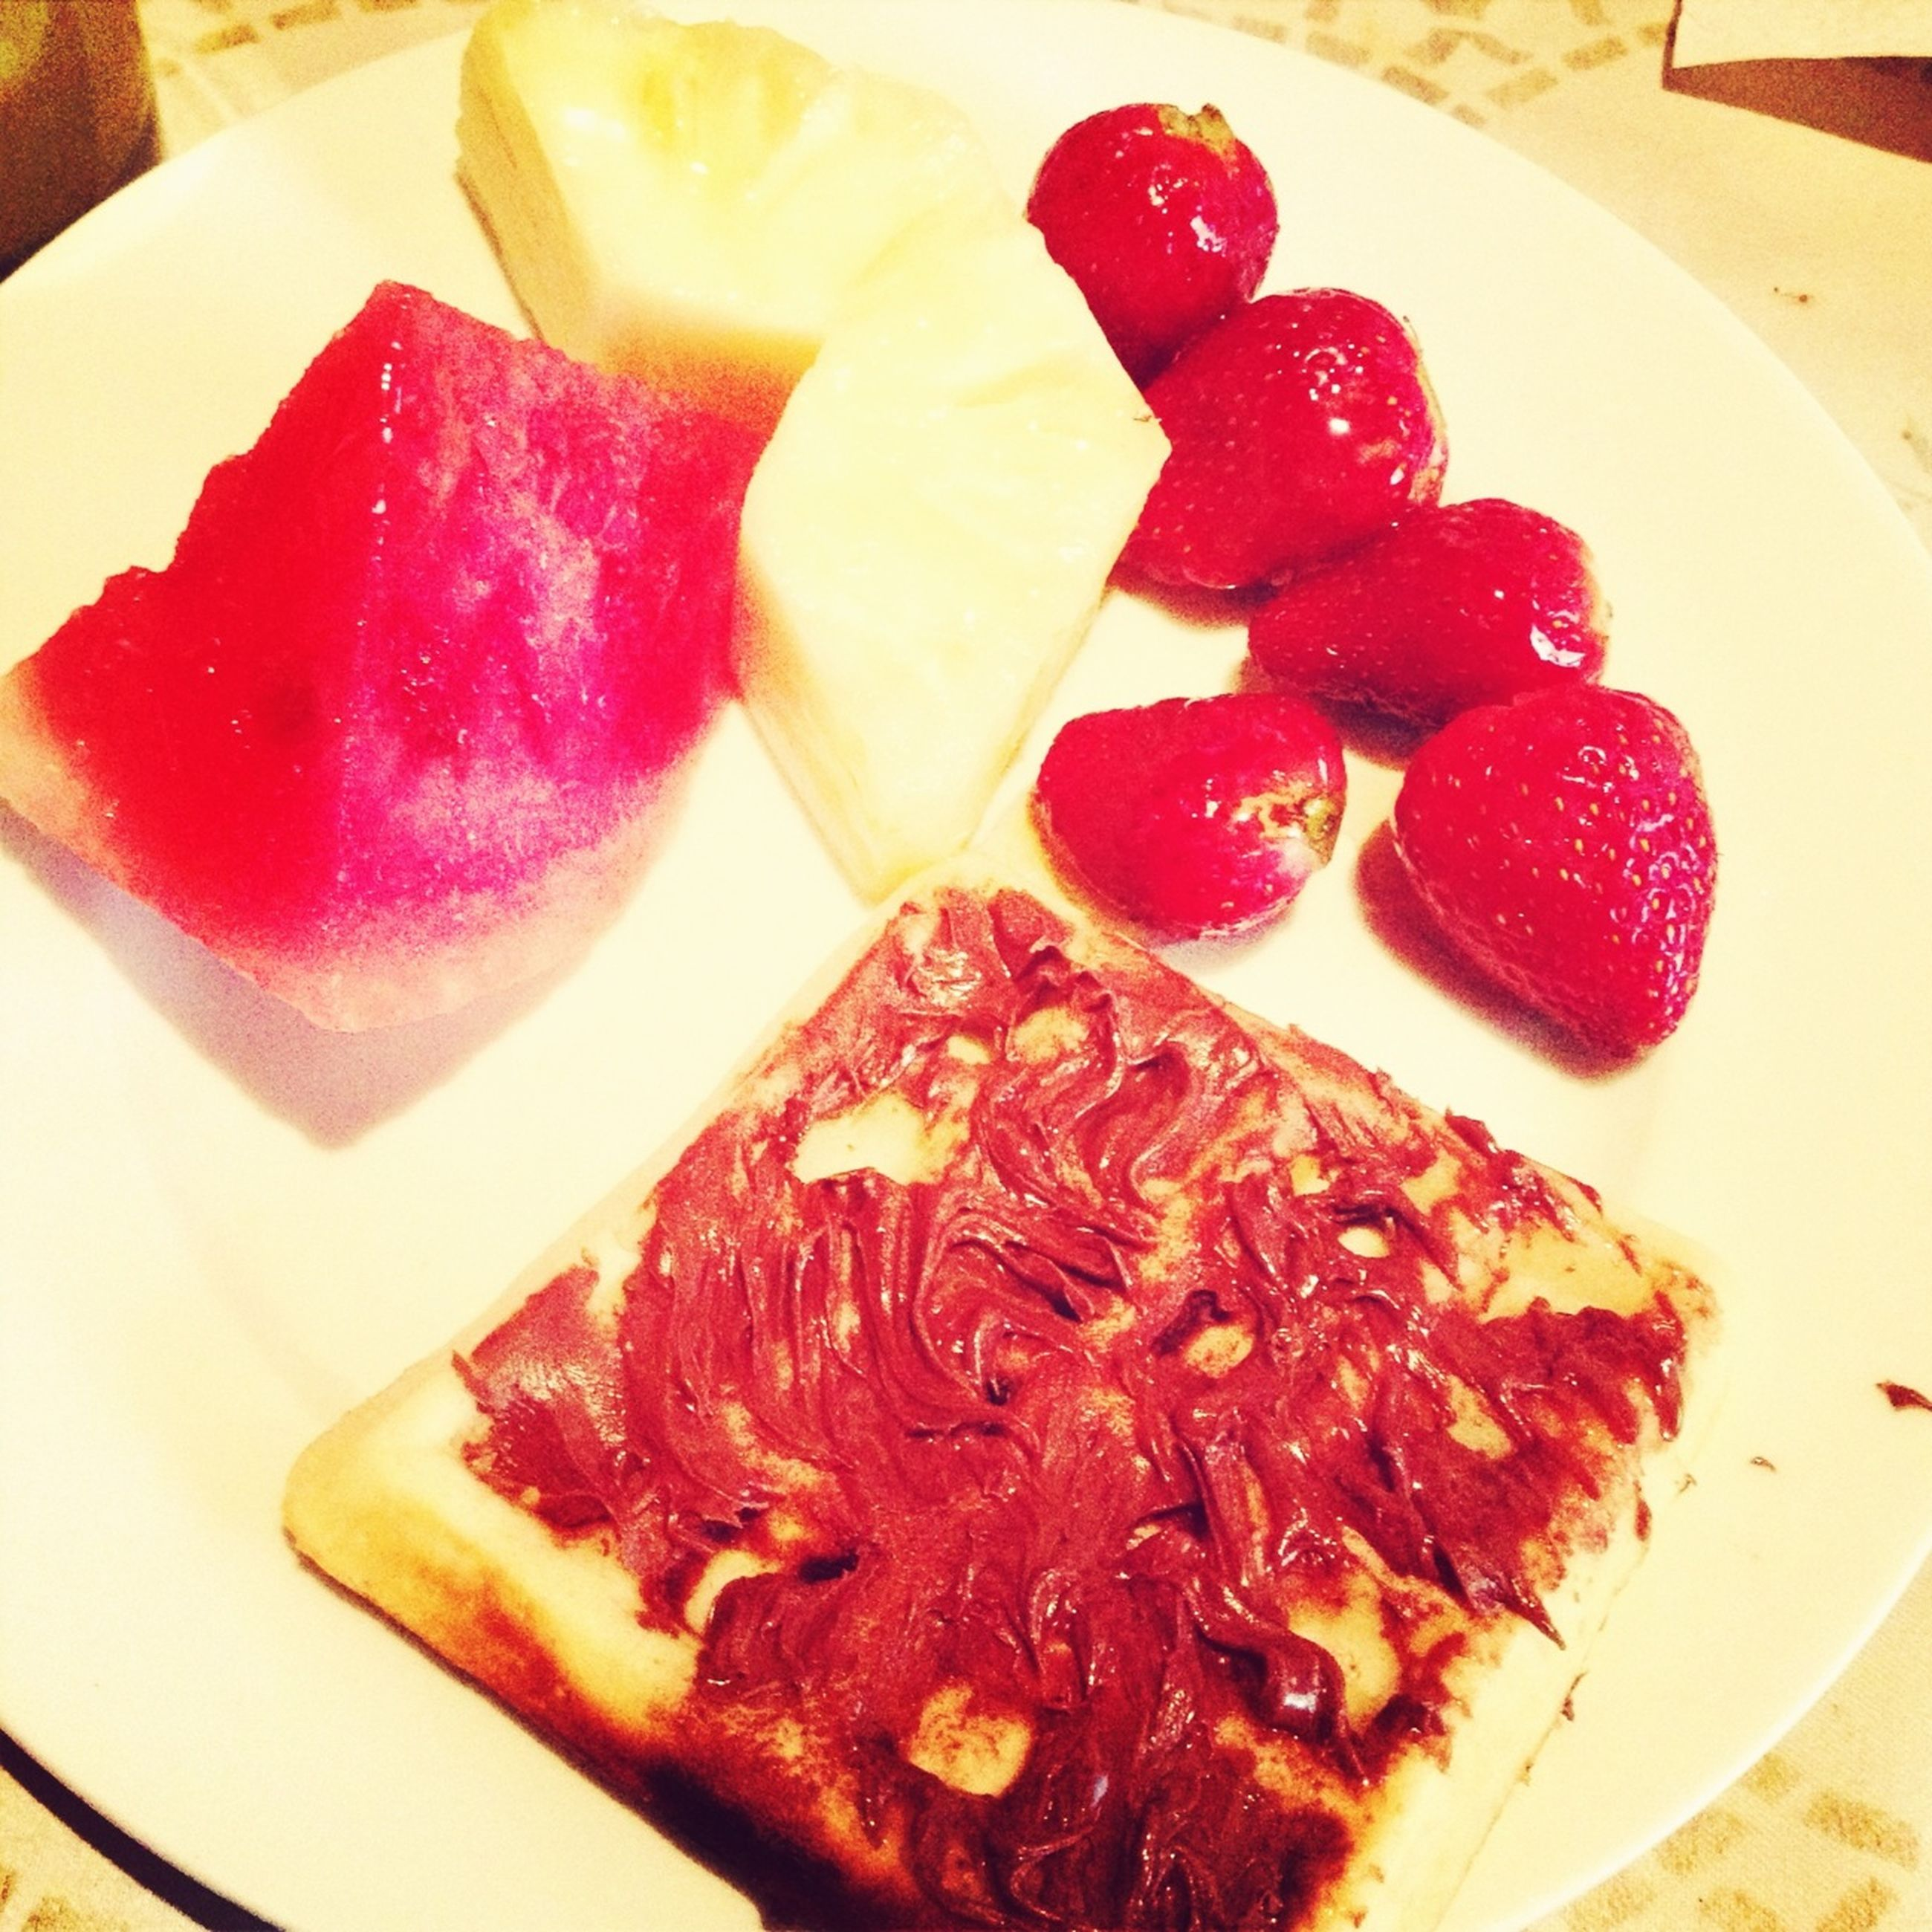 food and drink, food, freshness, indoors, ready-to-eat, strawberry, plate, fruit, still life, indulgence, sweet food, red, healthy eating, serving size, dessert, slice, temptation, table, close-up